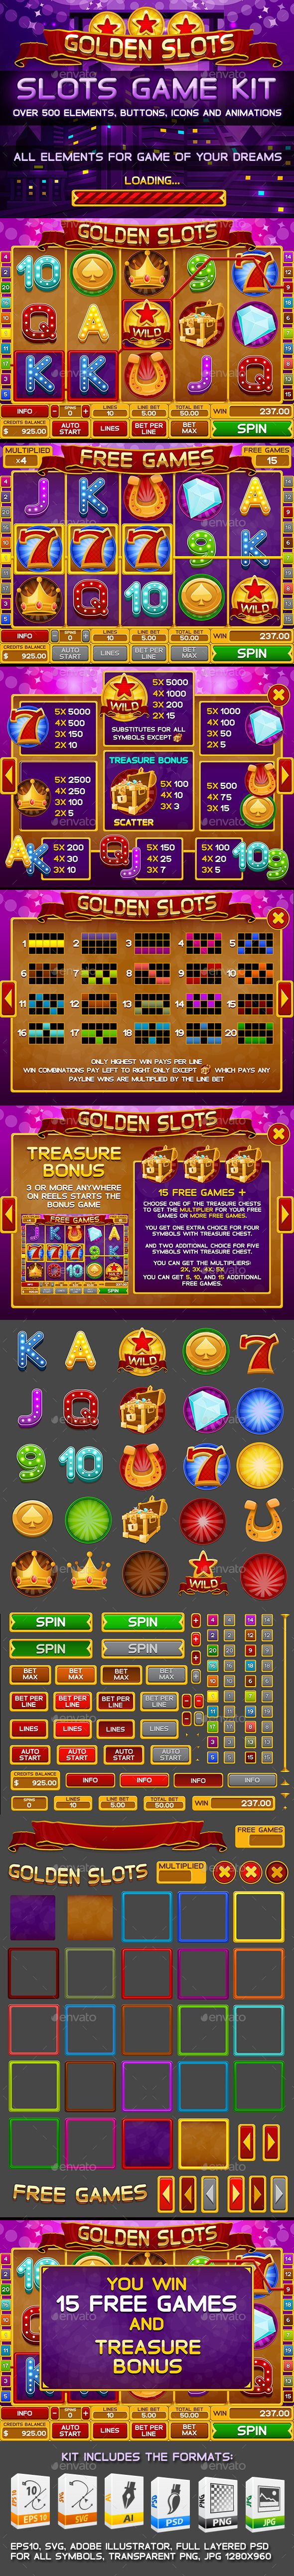 Golden Slots Game, this gaming kit comes with a complete set of elements, icons, buttons and animations